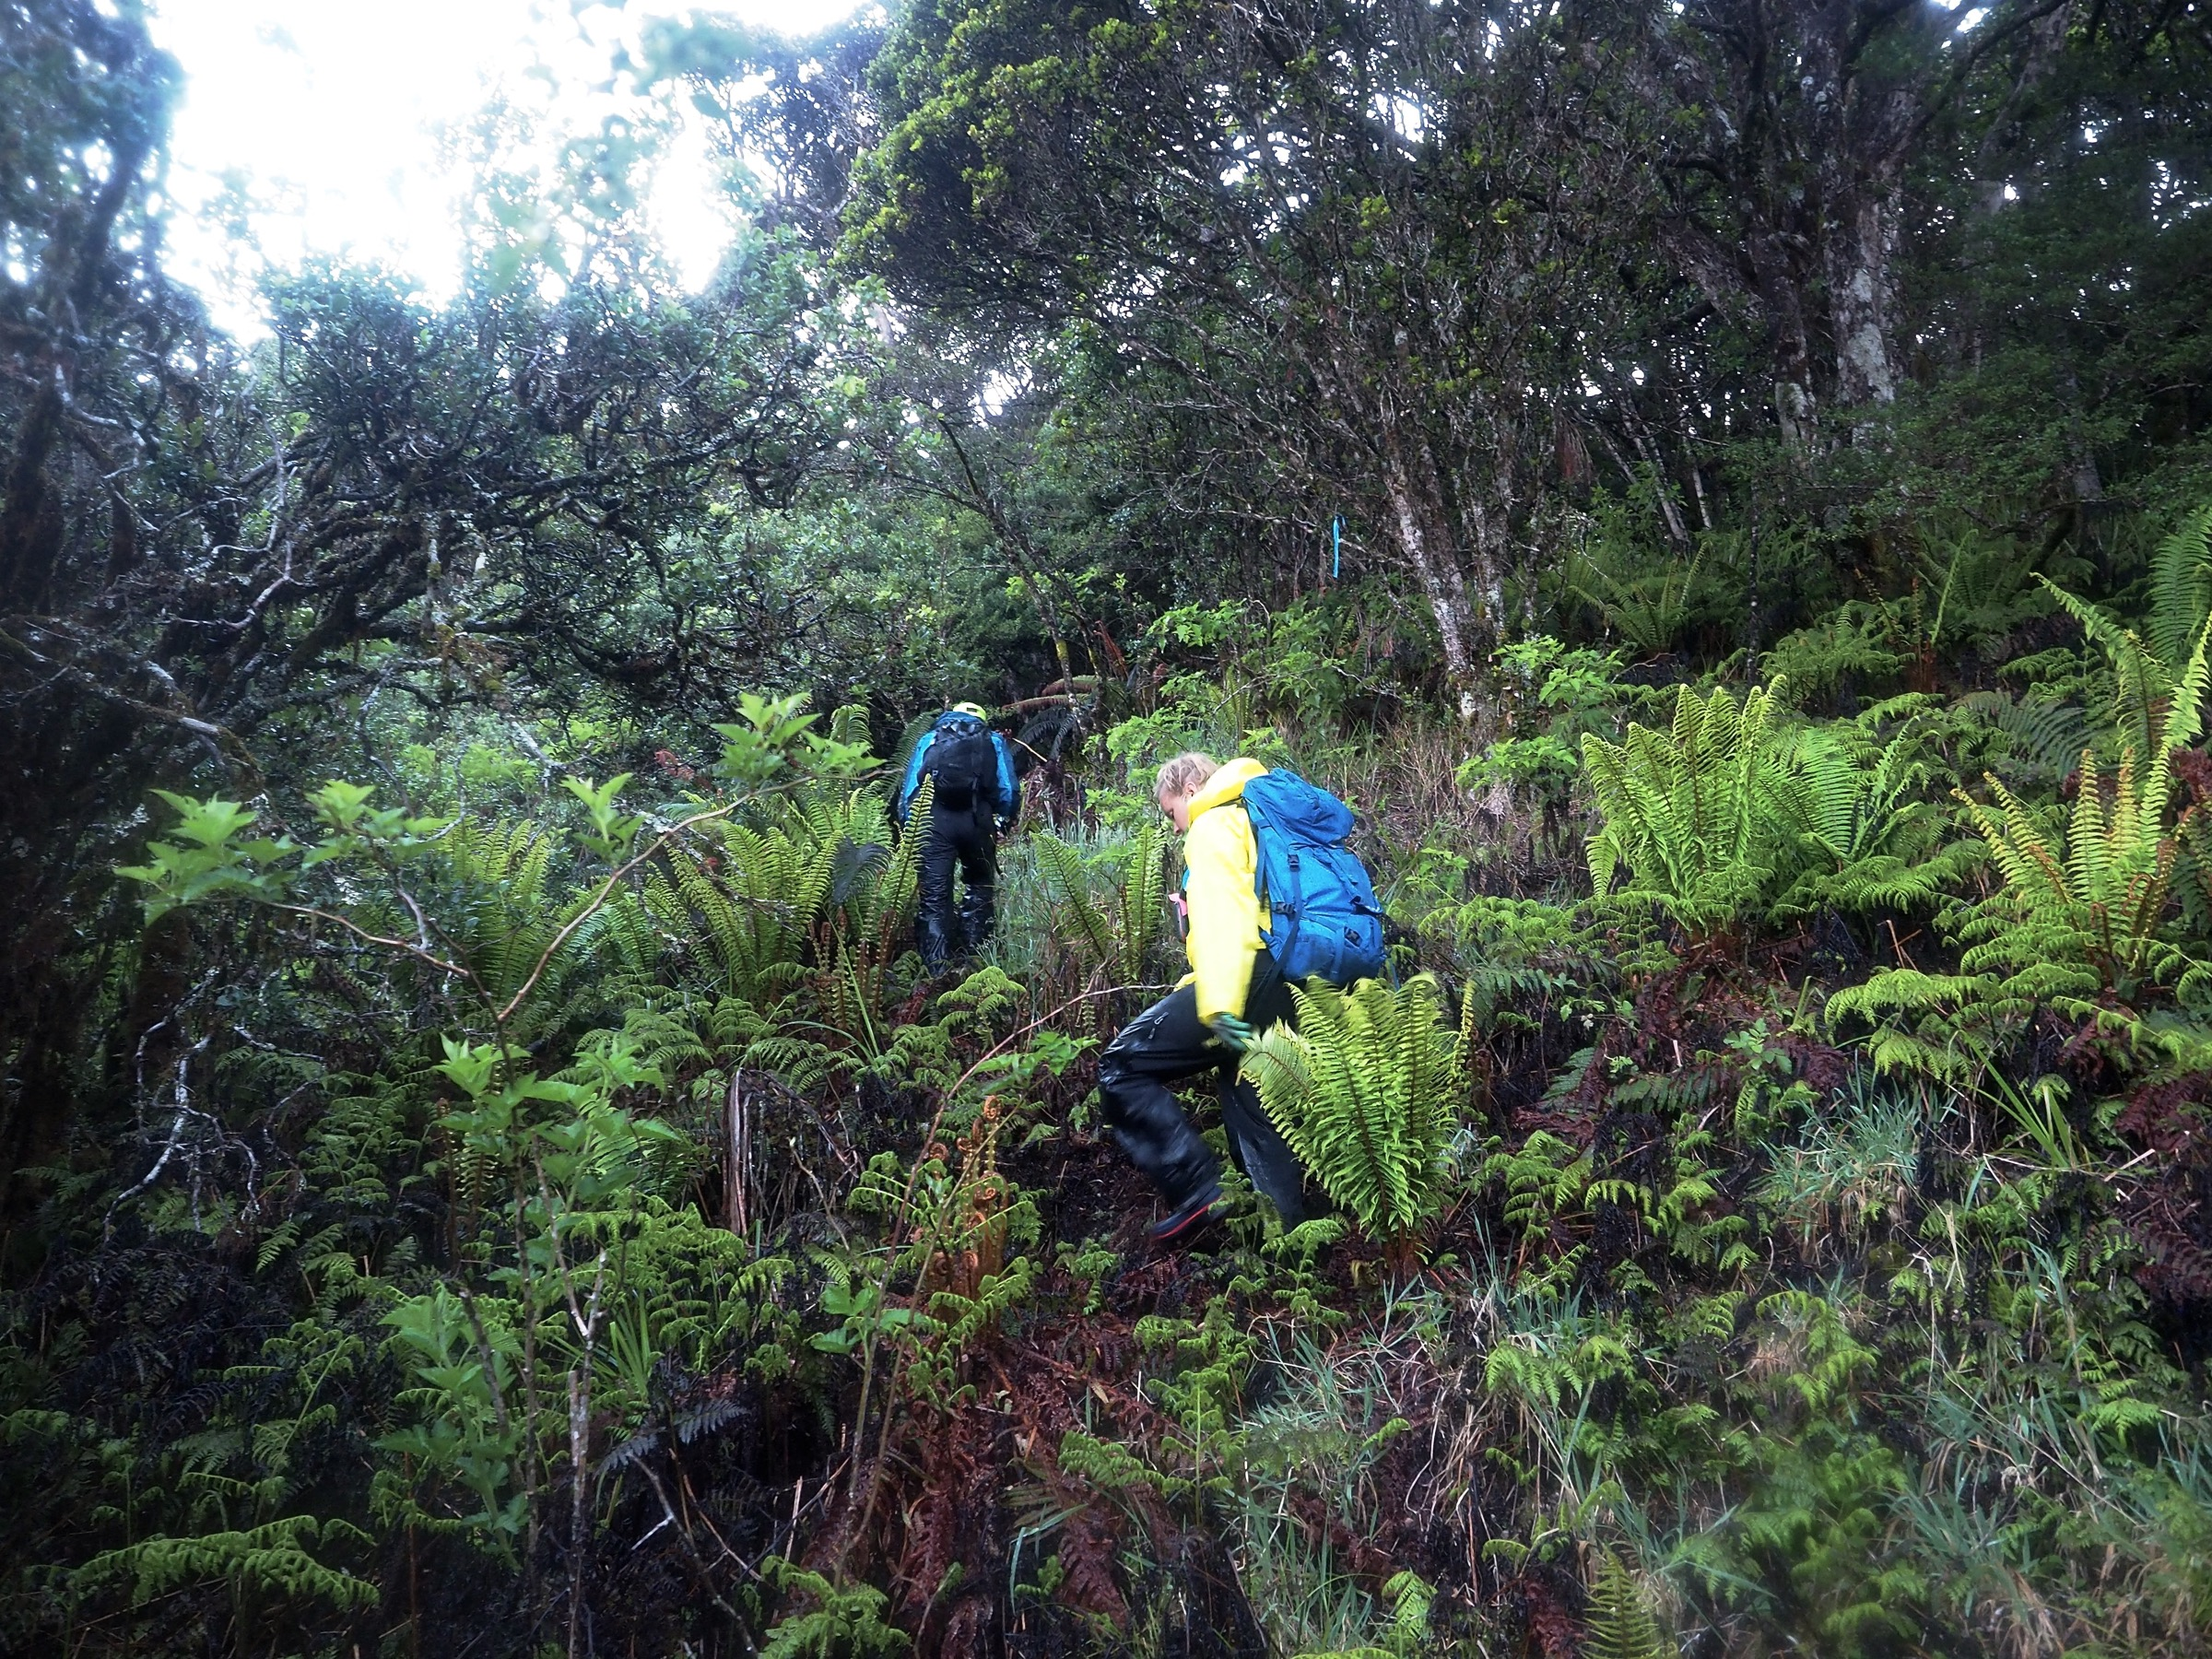 Seth Judge and Jenna Fish negotiate the steep terrain of the upper Kīpahulu Valley. Photograph by Jeremy Miller